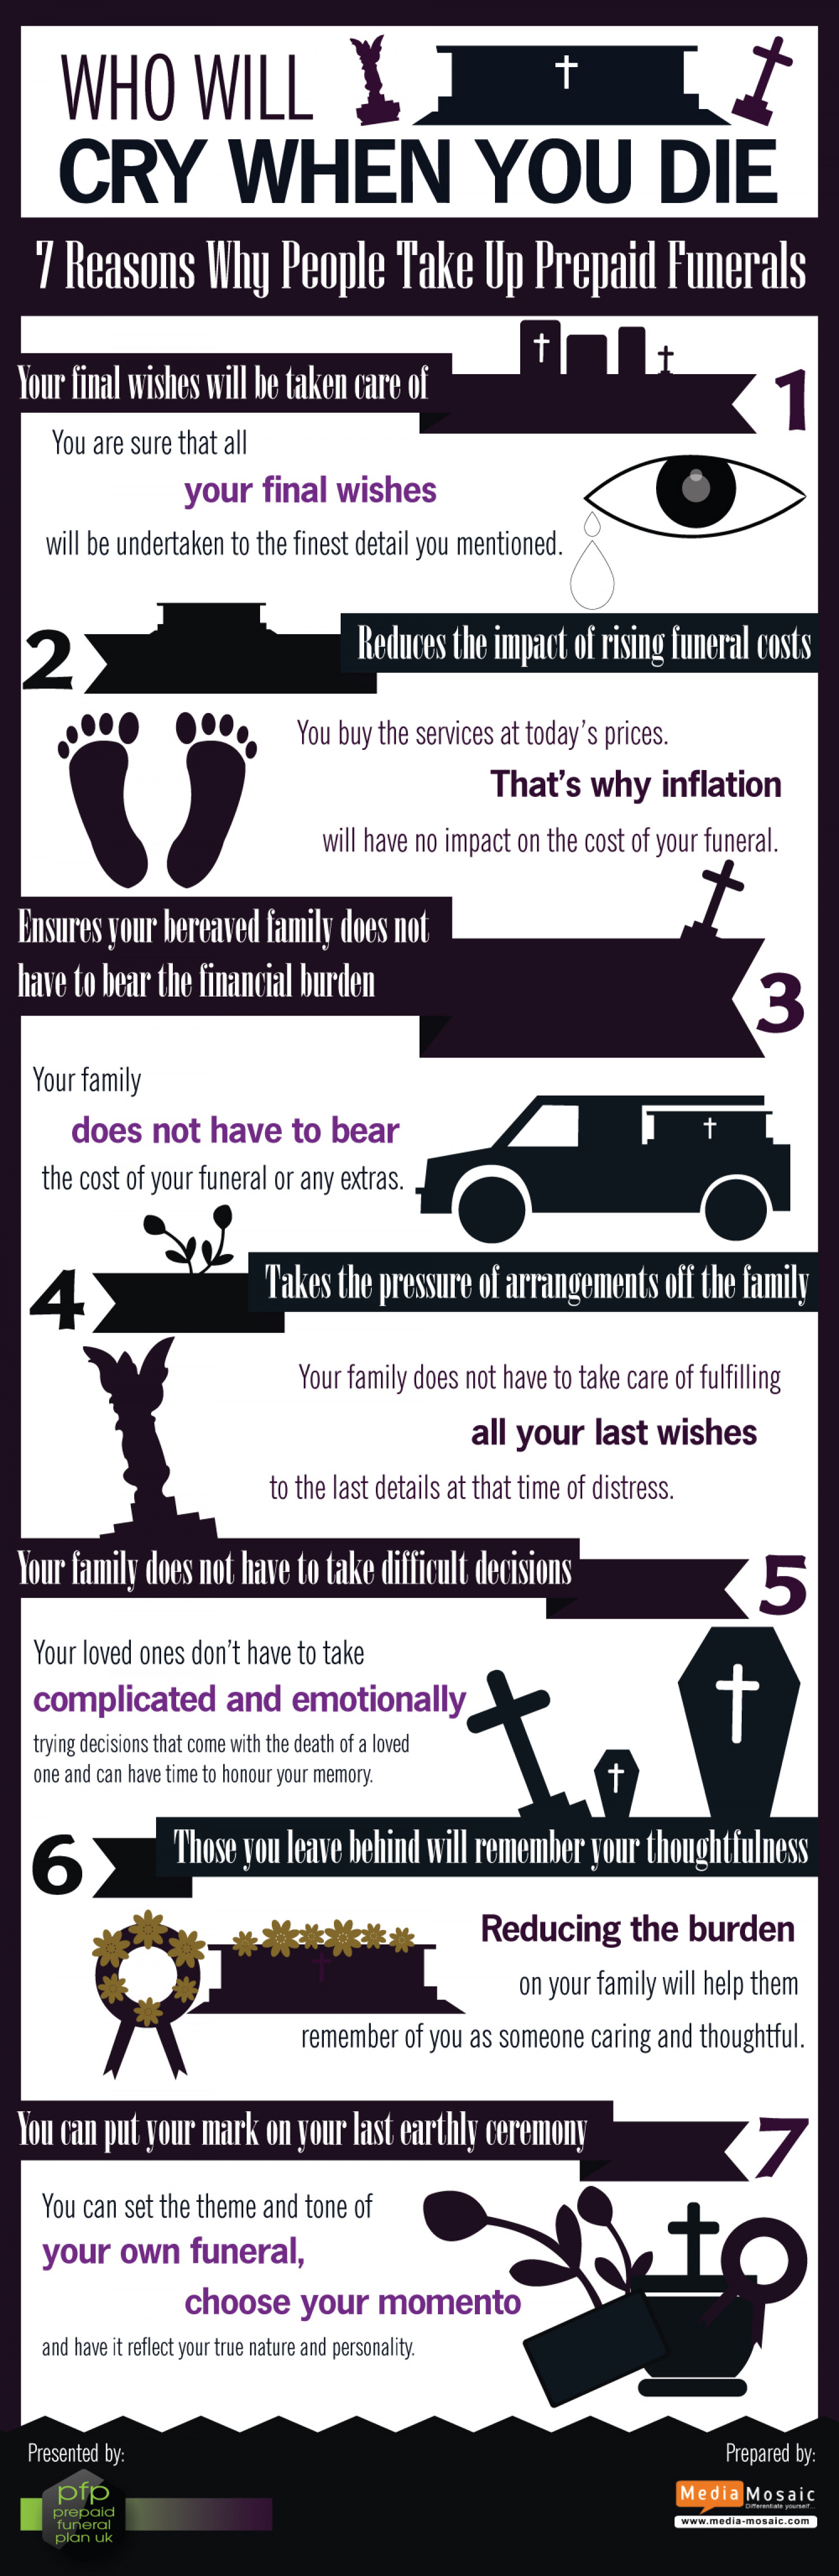 Who Will Cry When You Die Infographic